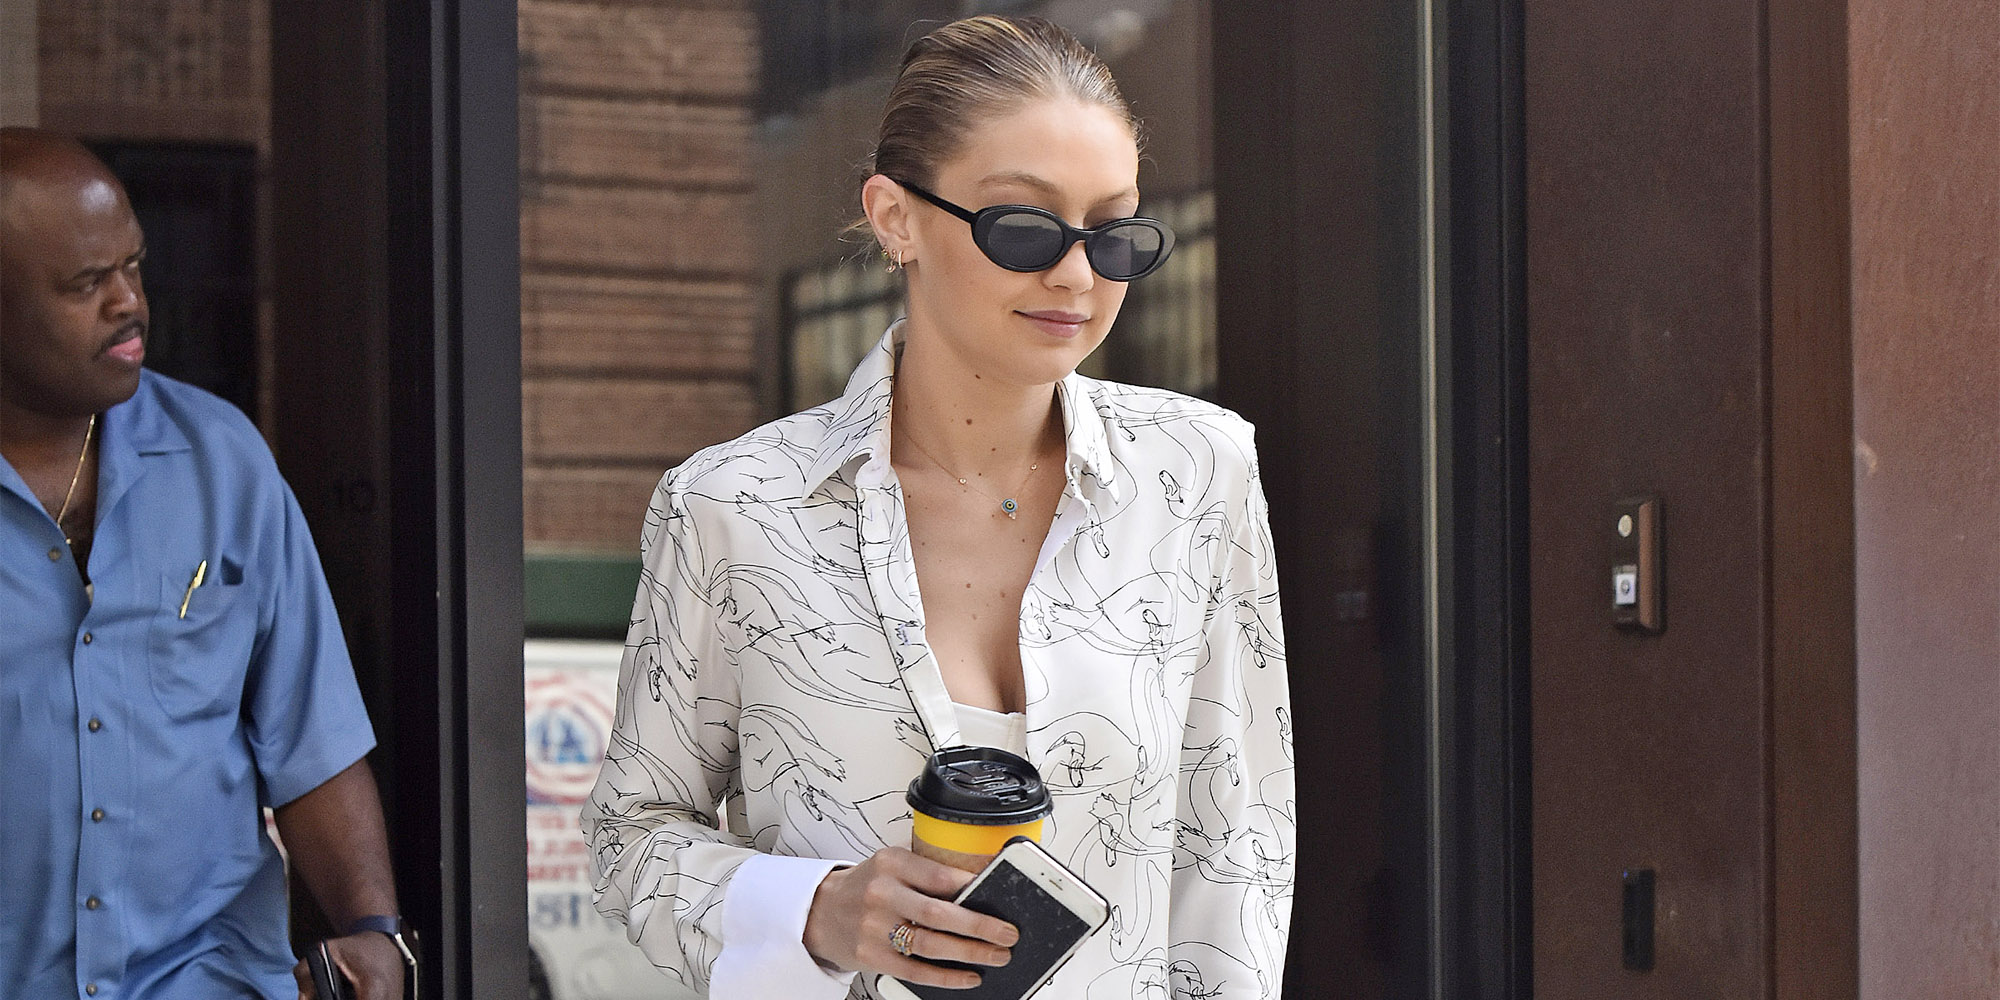 EXCLUSIVE: Gigi Hadid wears a white patterned summer dress and Gucci slippers while heading out in New York City, New York.  Pictured: Gigi Hadid Ref: SPL1536069  160717   EXCLUSIVE Picture by: Edward Opi / Splash News  Splash News and Pictures Los Angeles:310-821-2666 New York:212-619-2666 London:870-934-2666 photodesk@splashnews.com